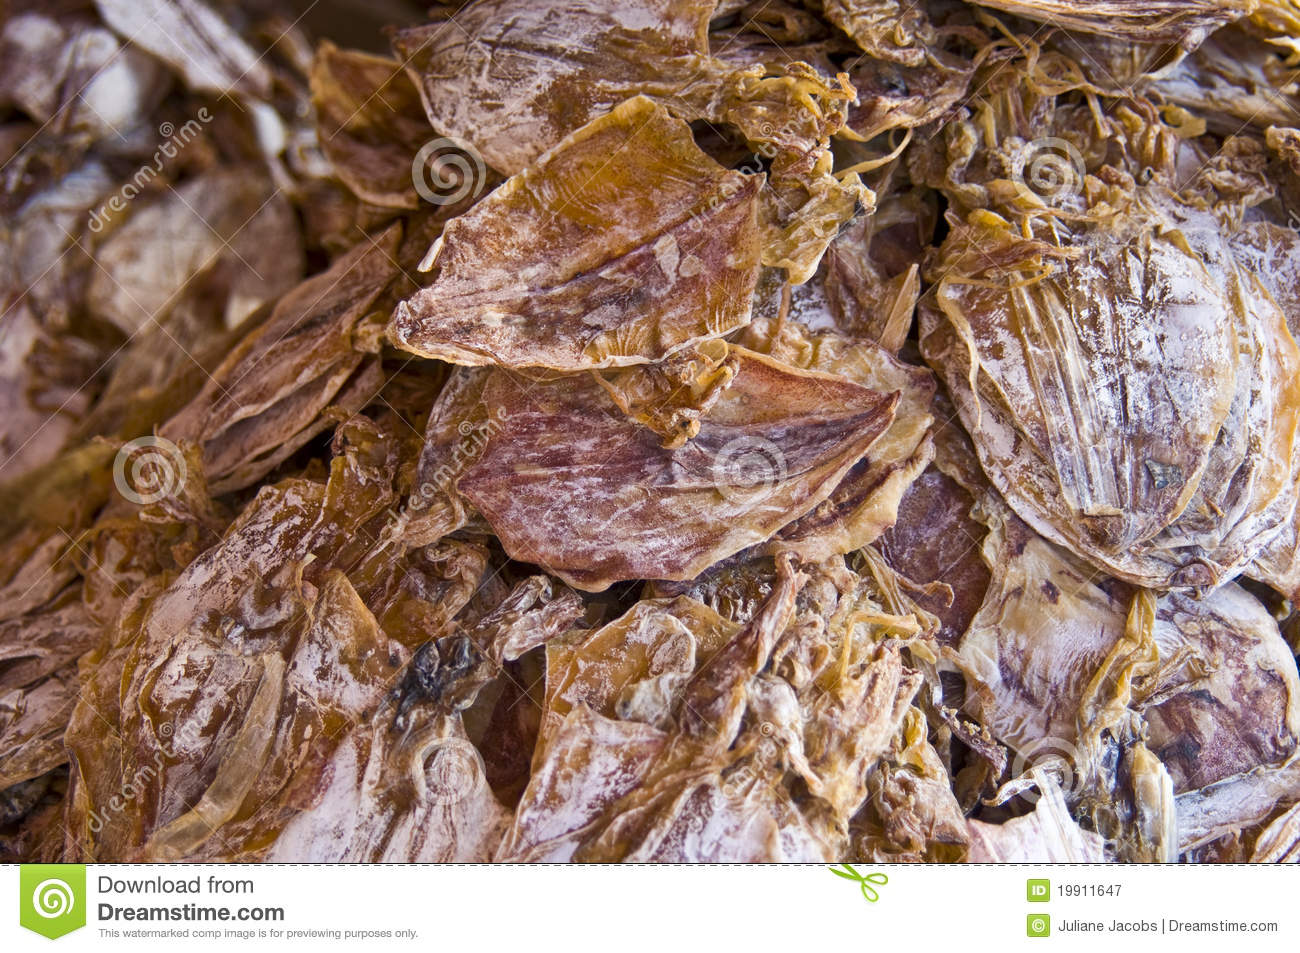 Dried fish stock image image of group fish seafood for Dried fish philippines